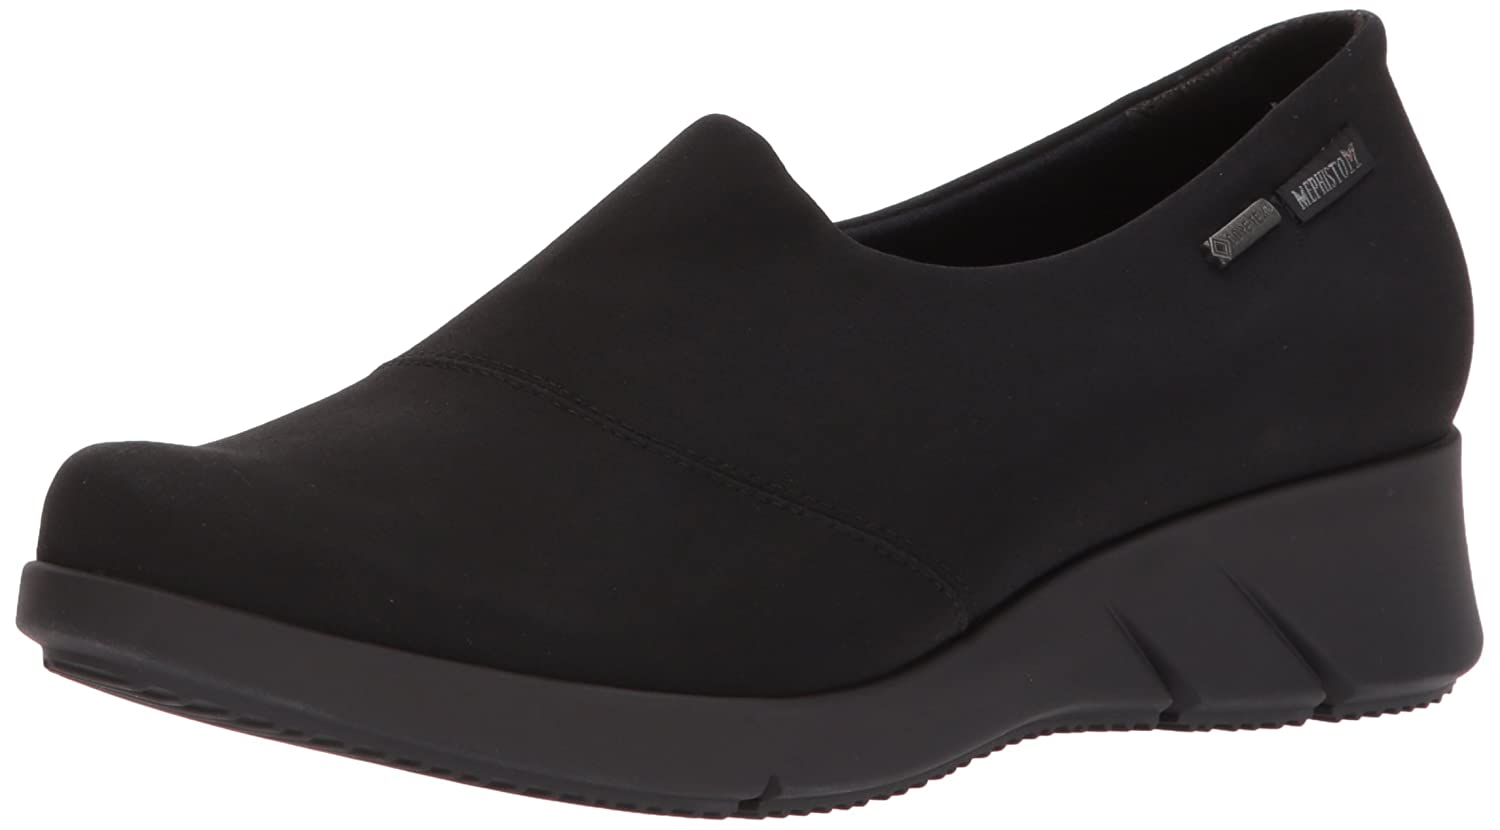 Mephisto Women's Molly Gt Rain Shoe B06XKF75HP 6 B(M) US|Black Stretch